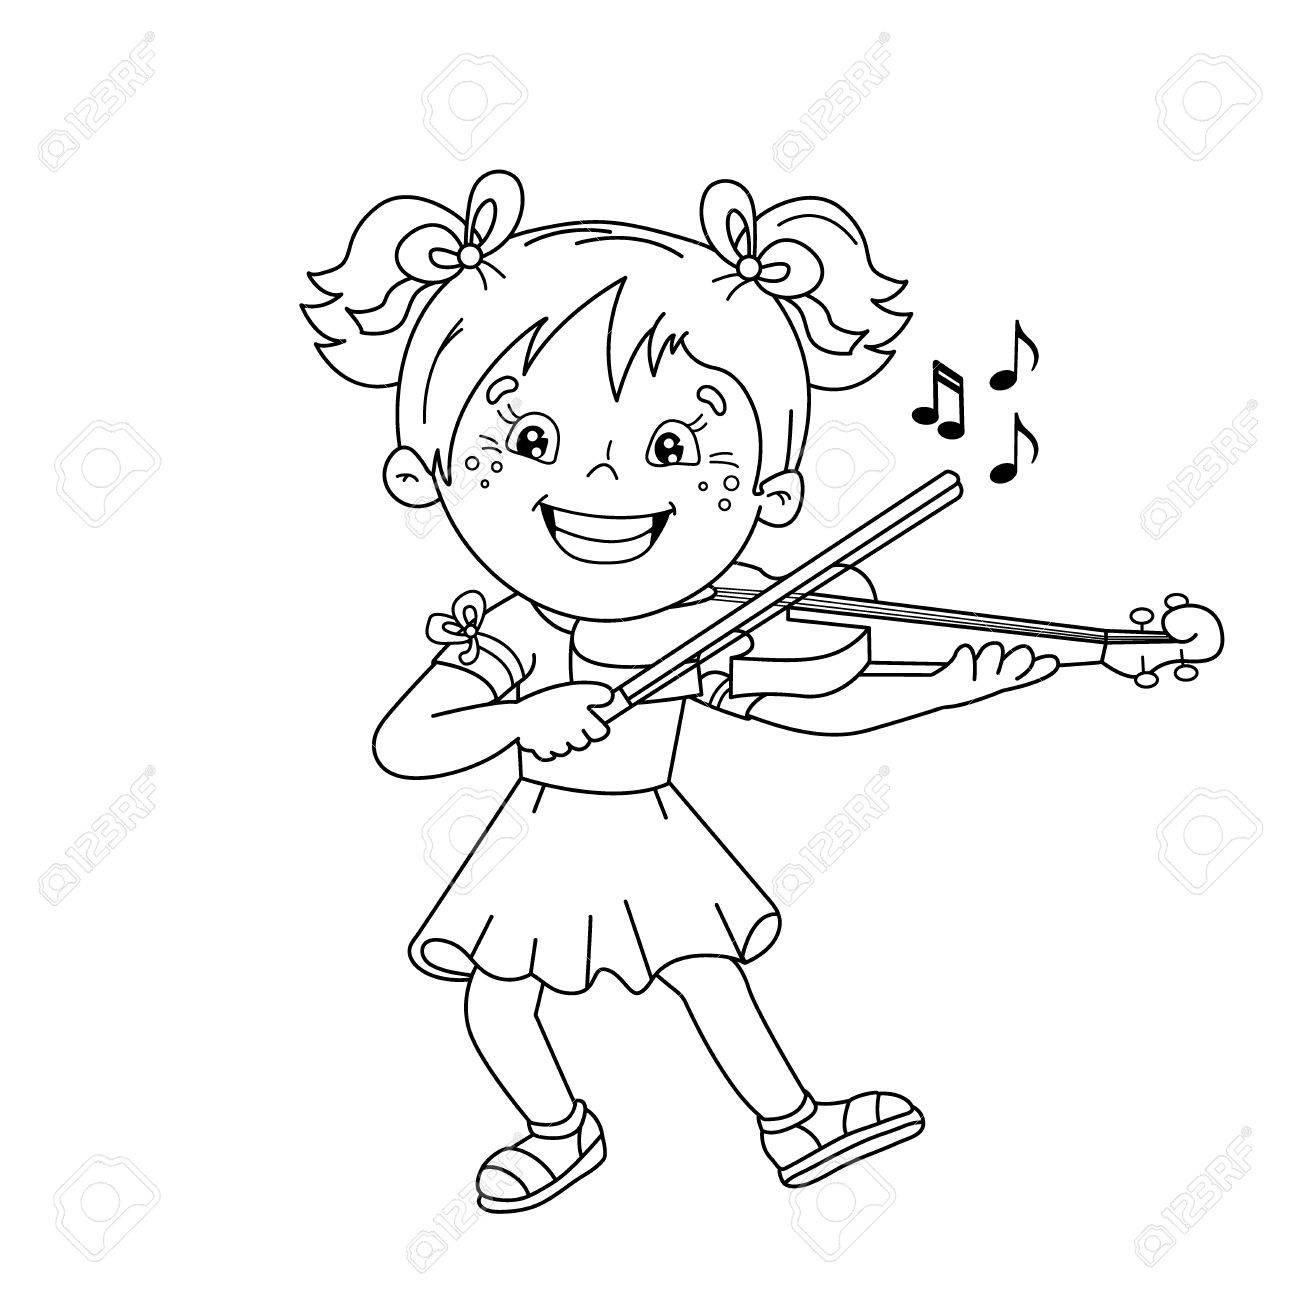 Coloring Page Outline Of Cartoon Girl Playing The Violin. Musical ...